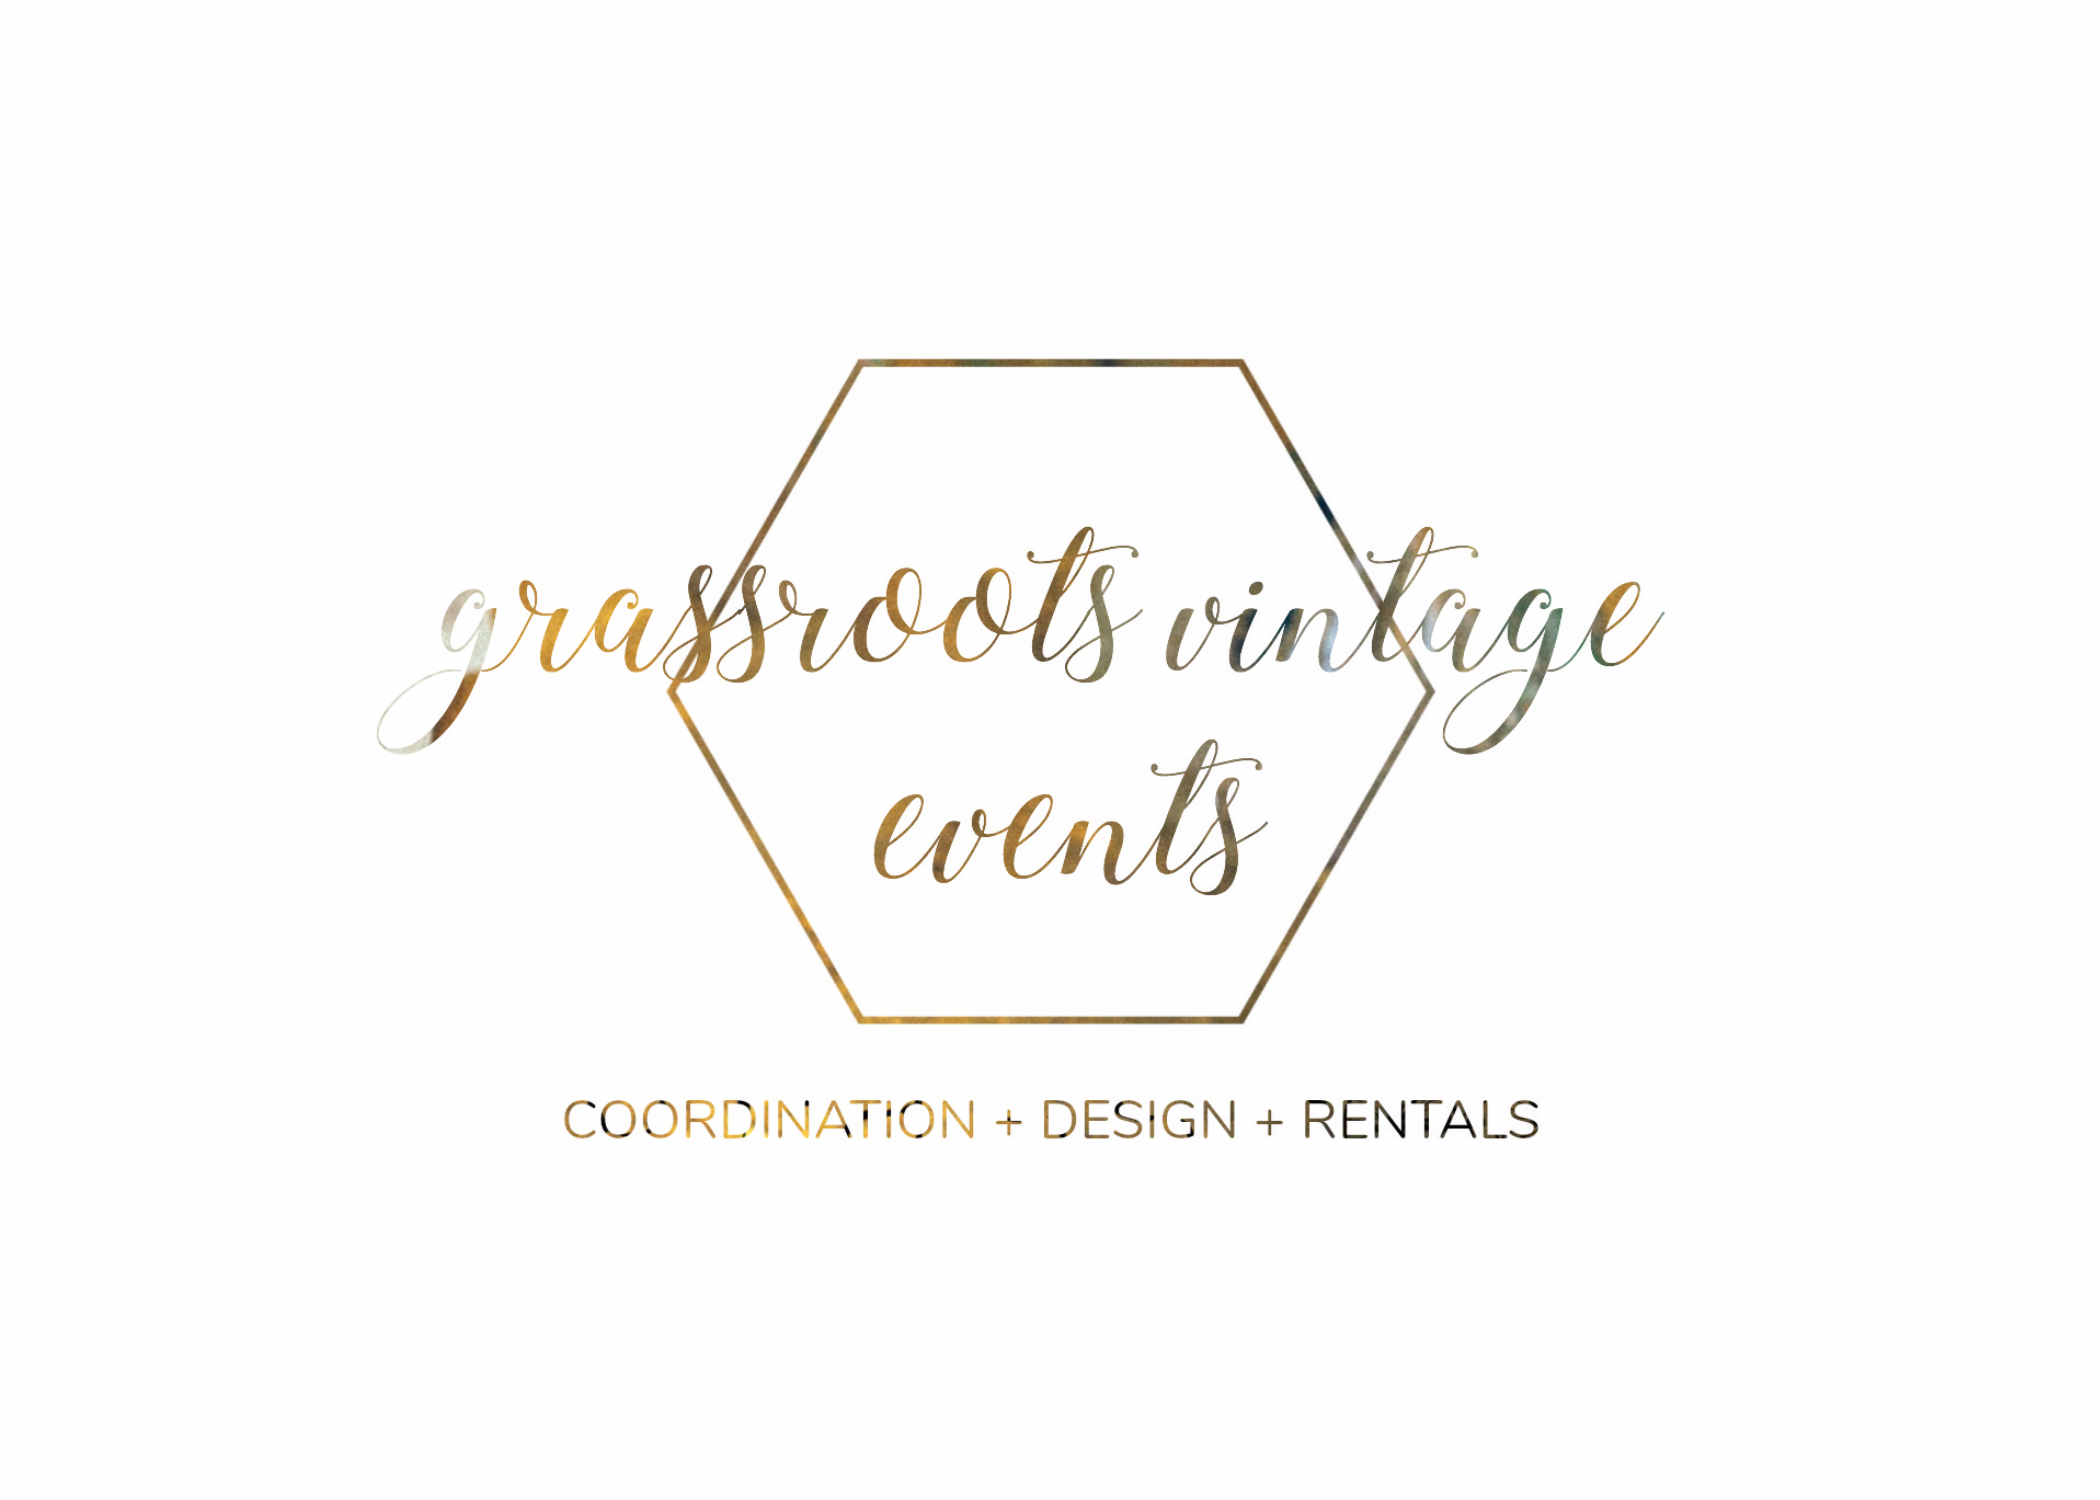 Grassroots Vintage Events